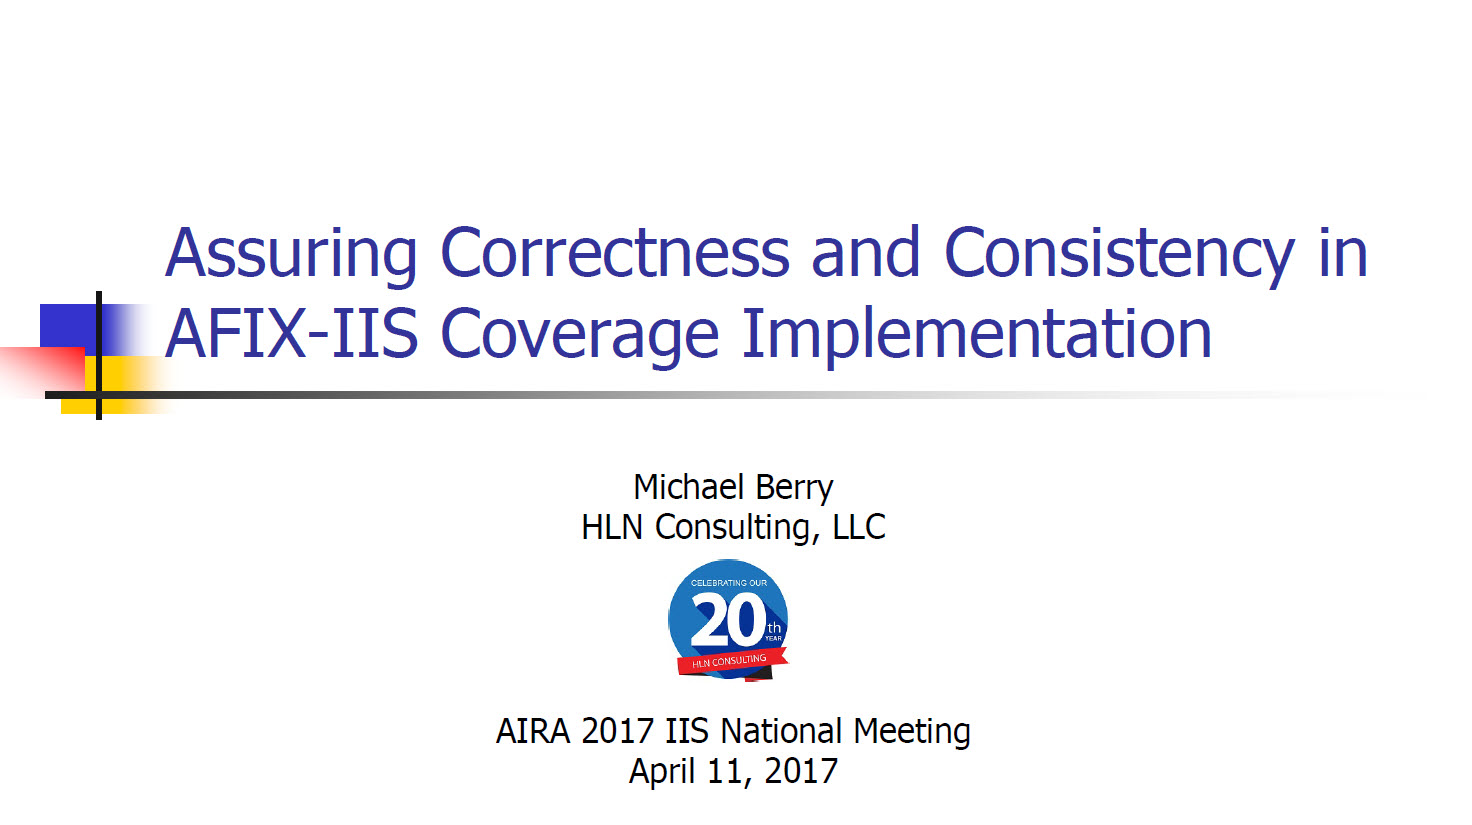 Assuring Correctness and Consistency in AFIX-IIS Coverage Implementation